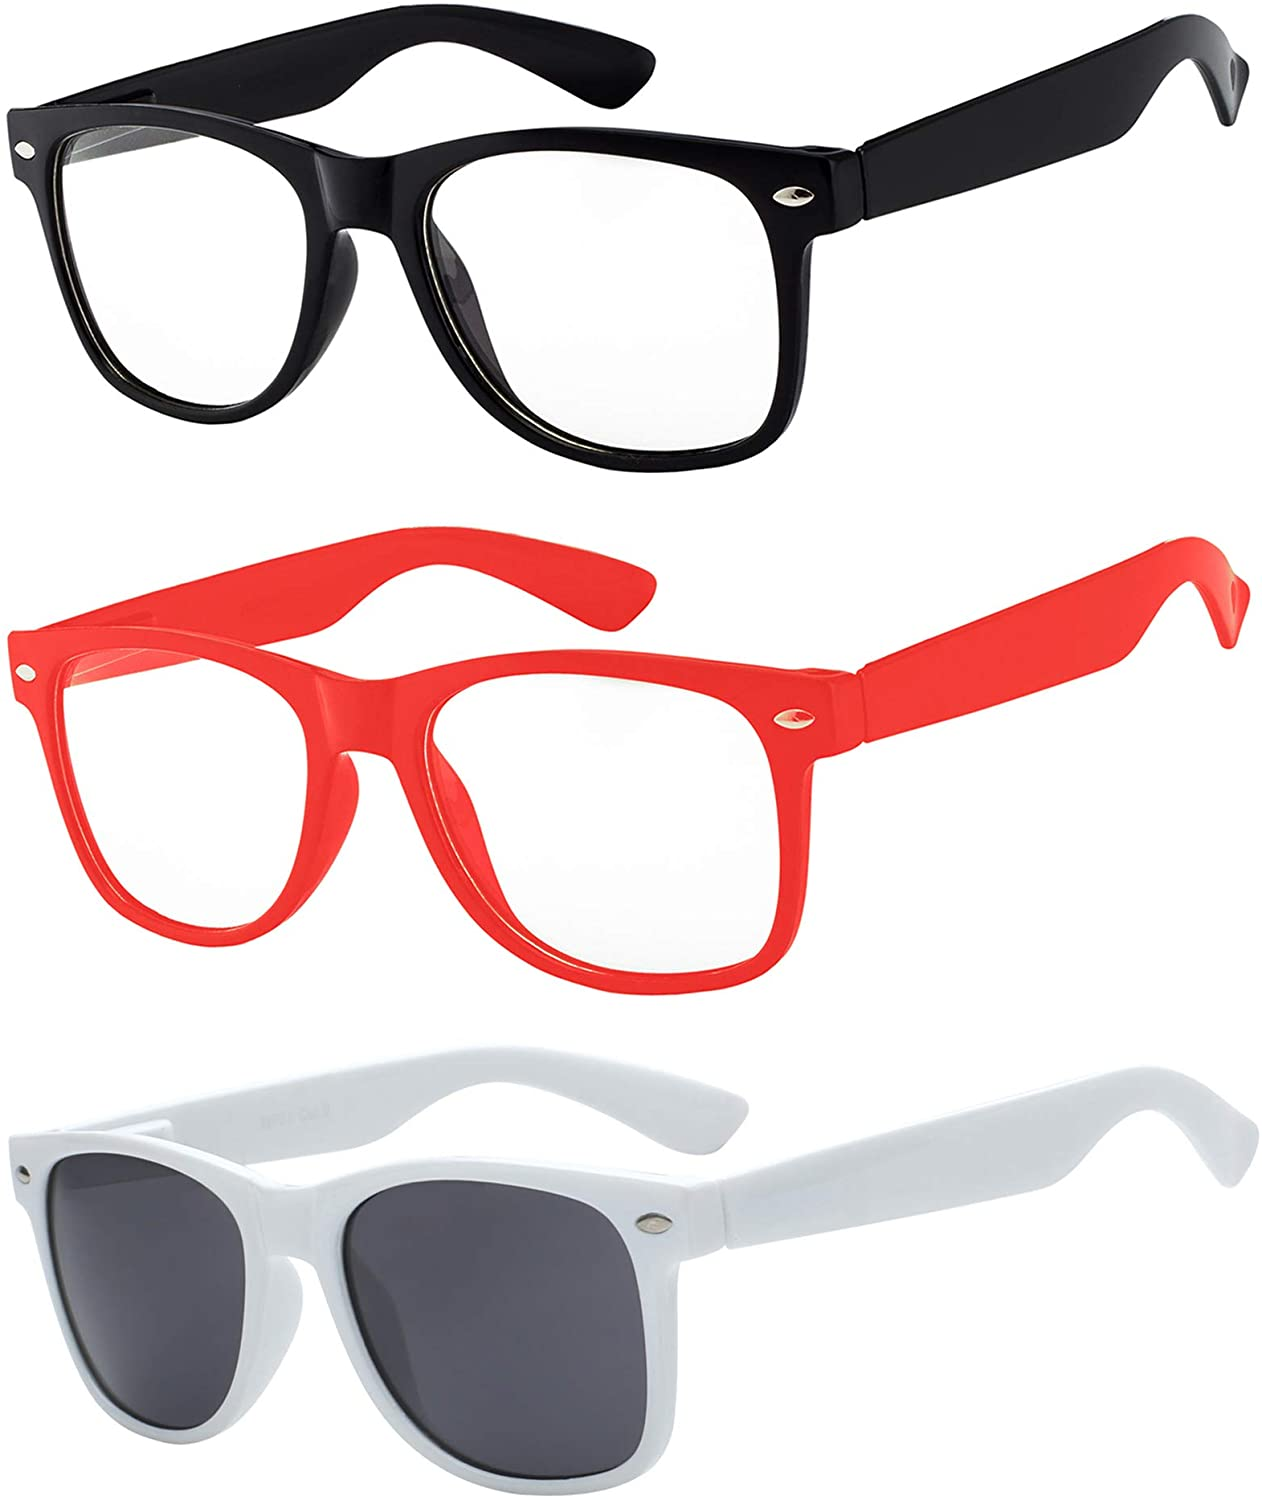 3 Pairs Kids Clear Lens Glasses Protect Child's Eyes from UVB UVA Blue Light Blocking